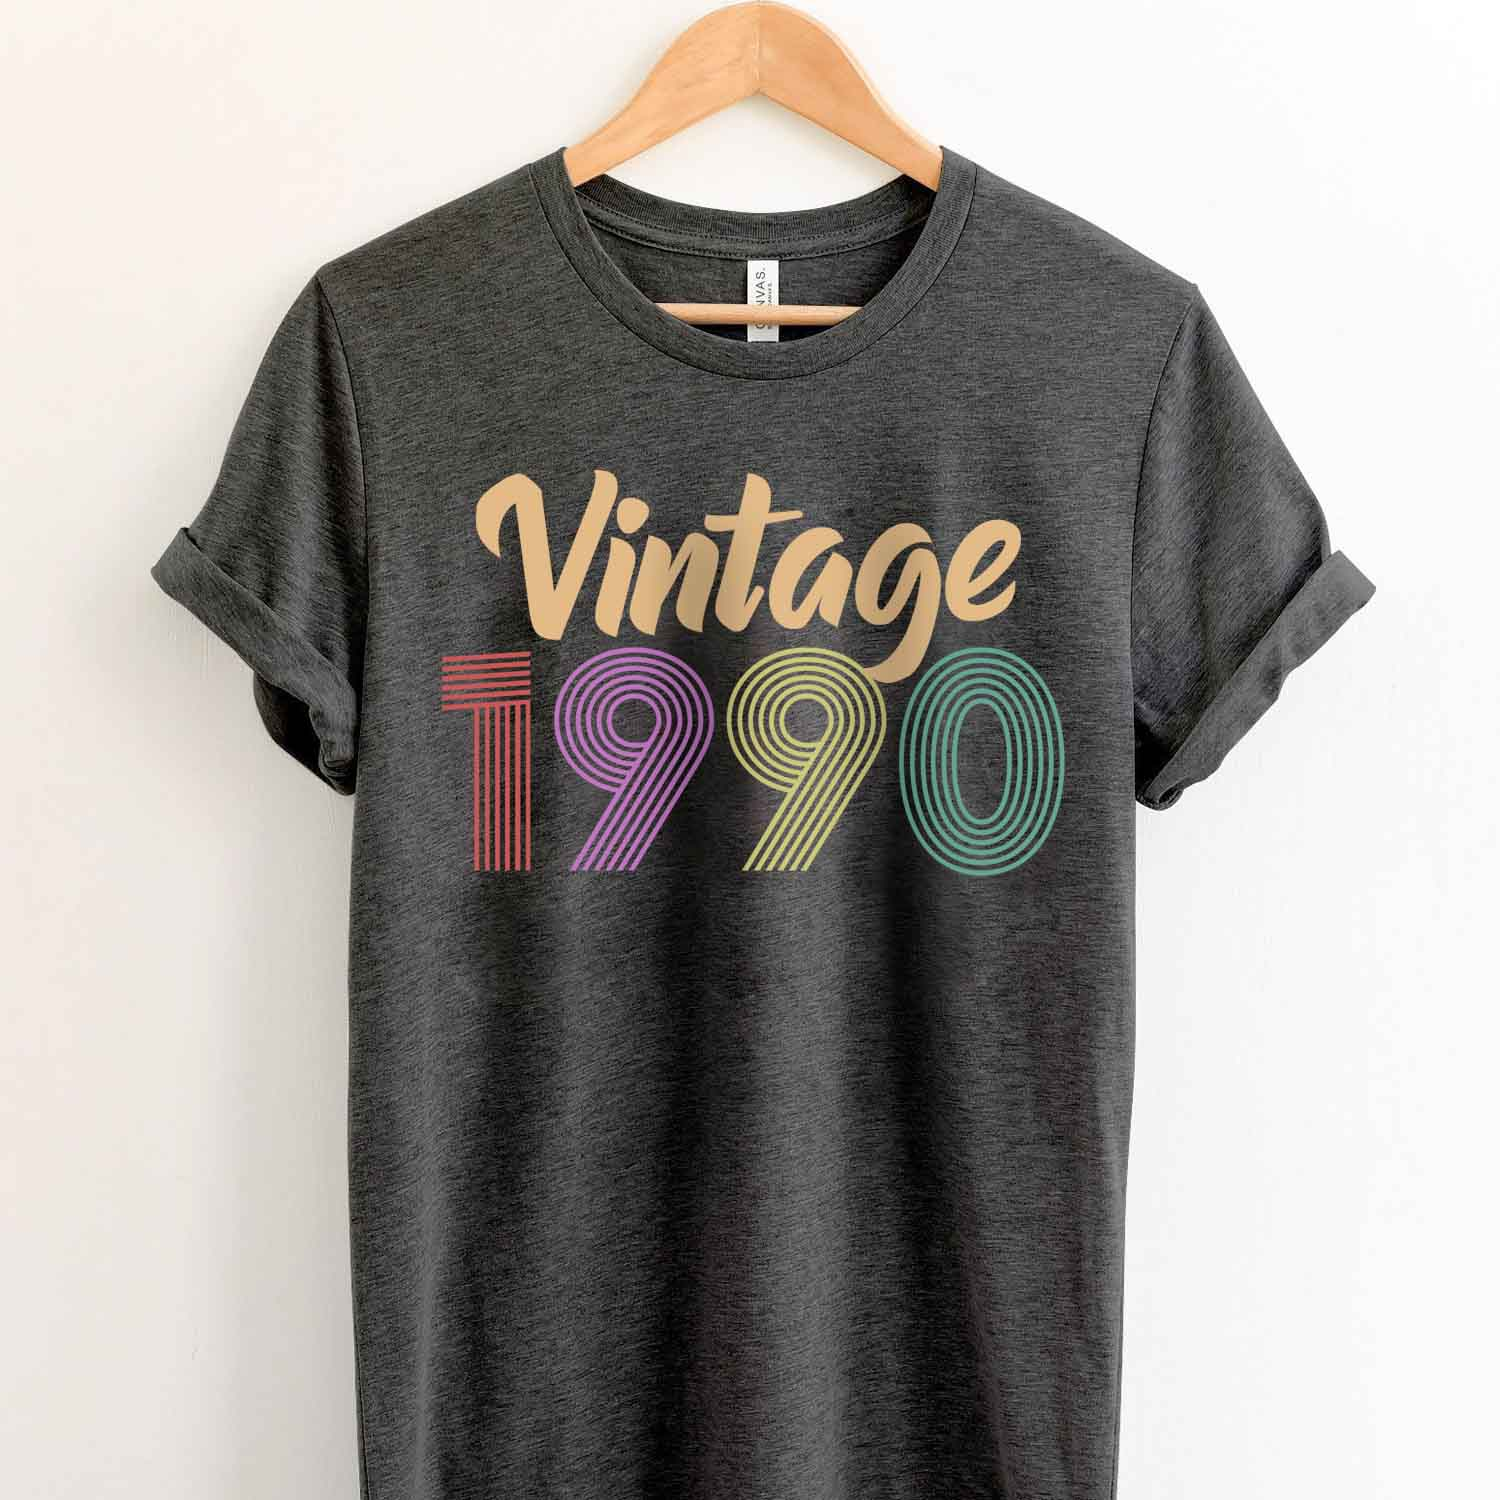 Vintage 1990 29th Birthday Anniversary T Shirt Gift for Family and Friend